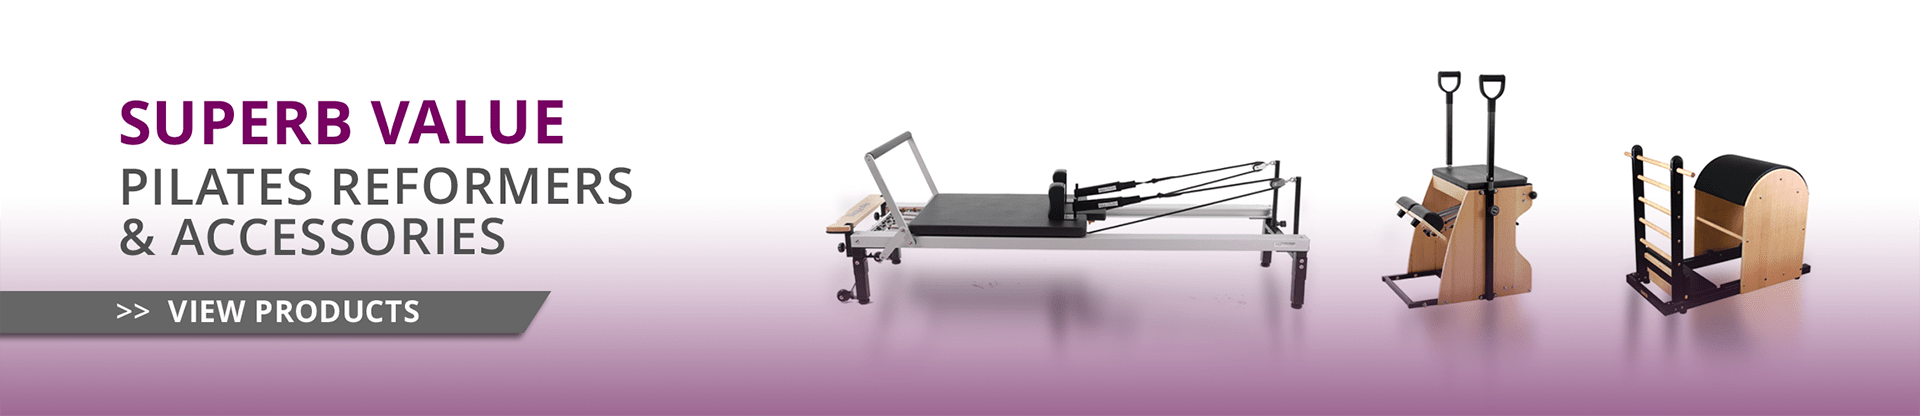 Align Pilates - View Products